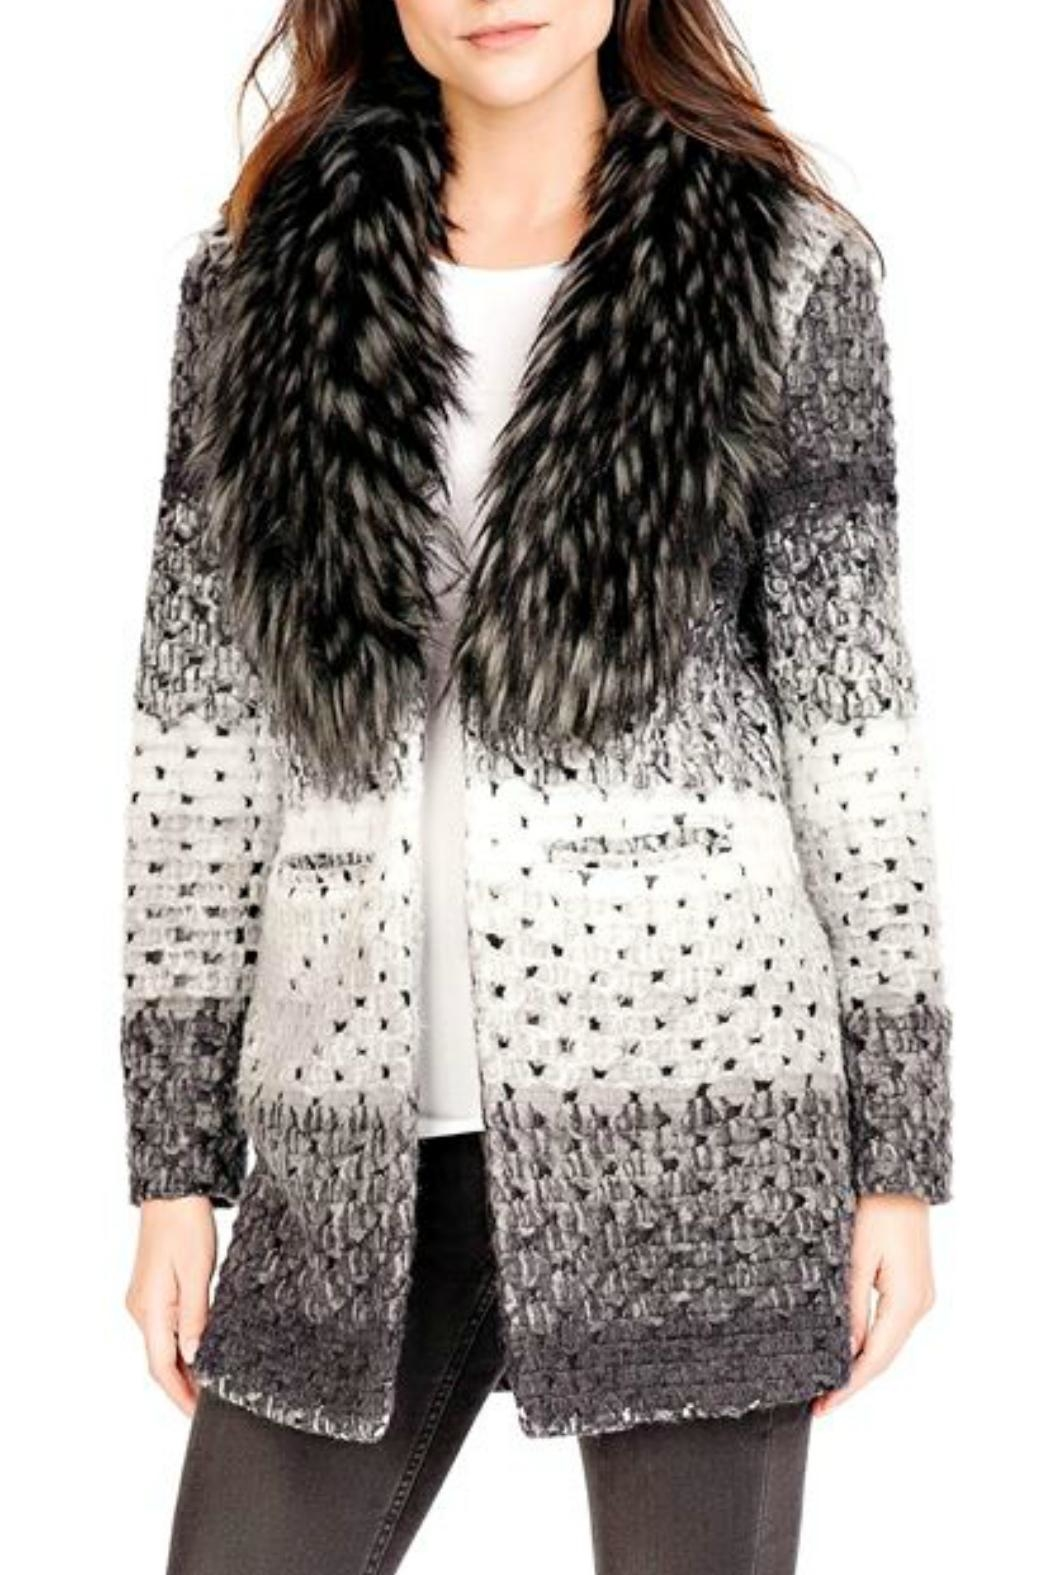 Donna Salyers Marble Knit Sweater - Main Image